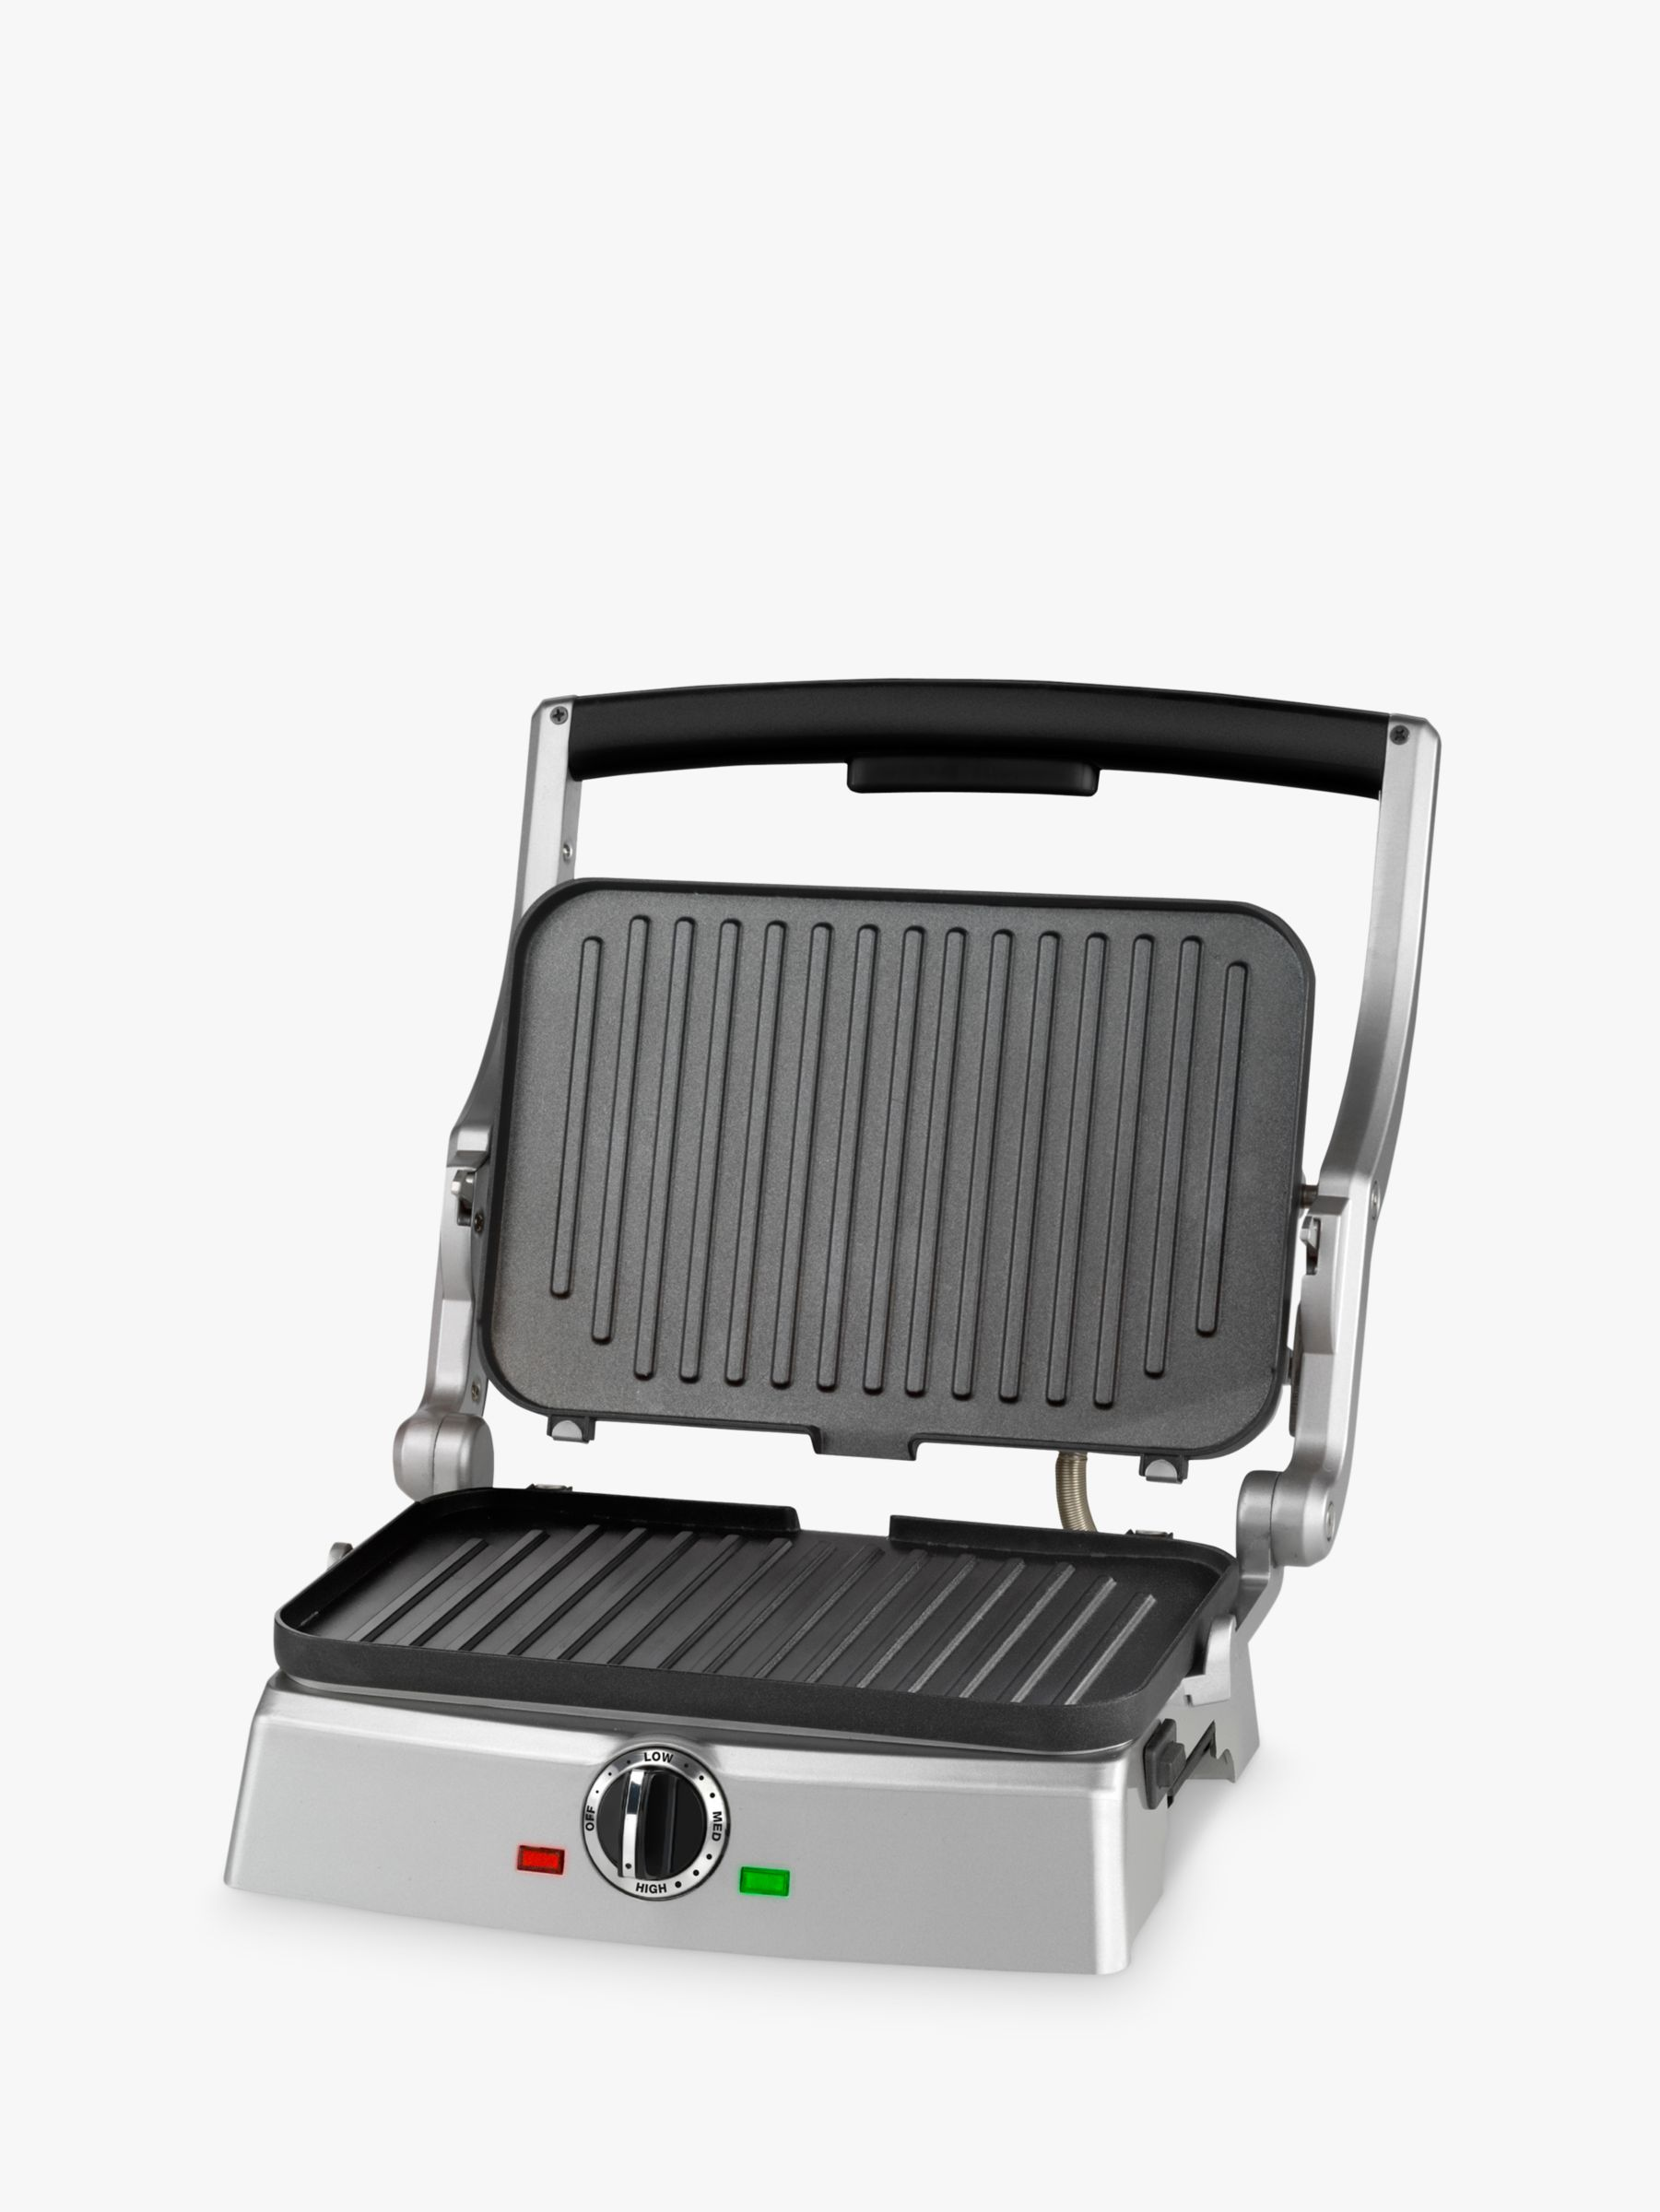 Cuisinart Grsm2u 2 In 1 Grill And Sandwich Maker At John Lewis Partners